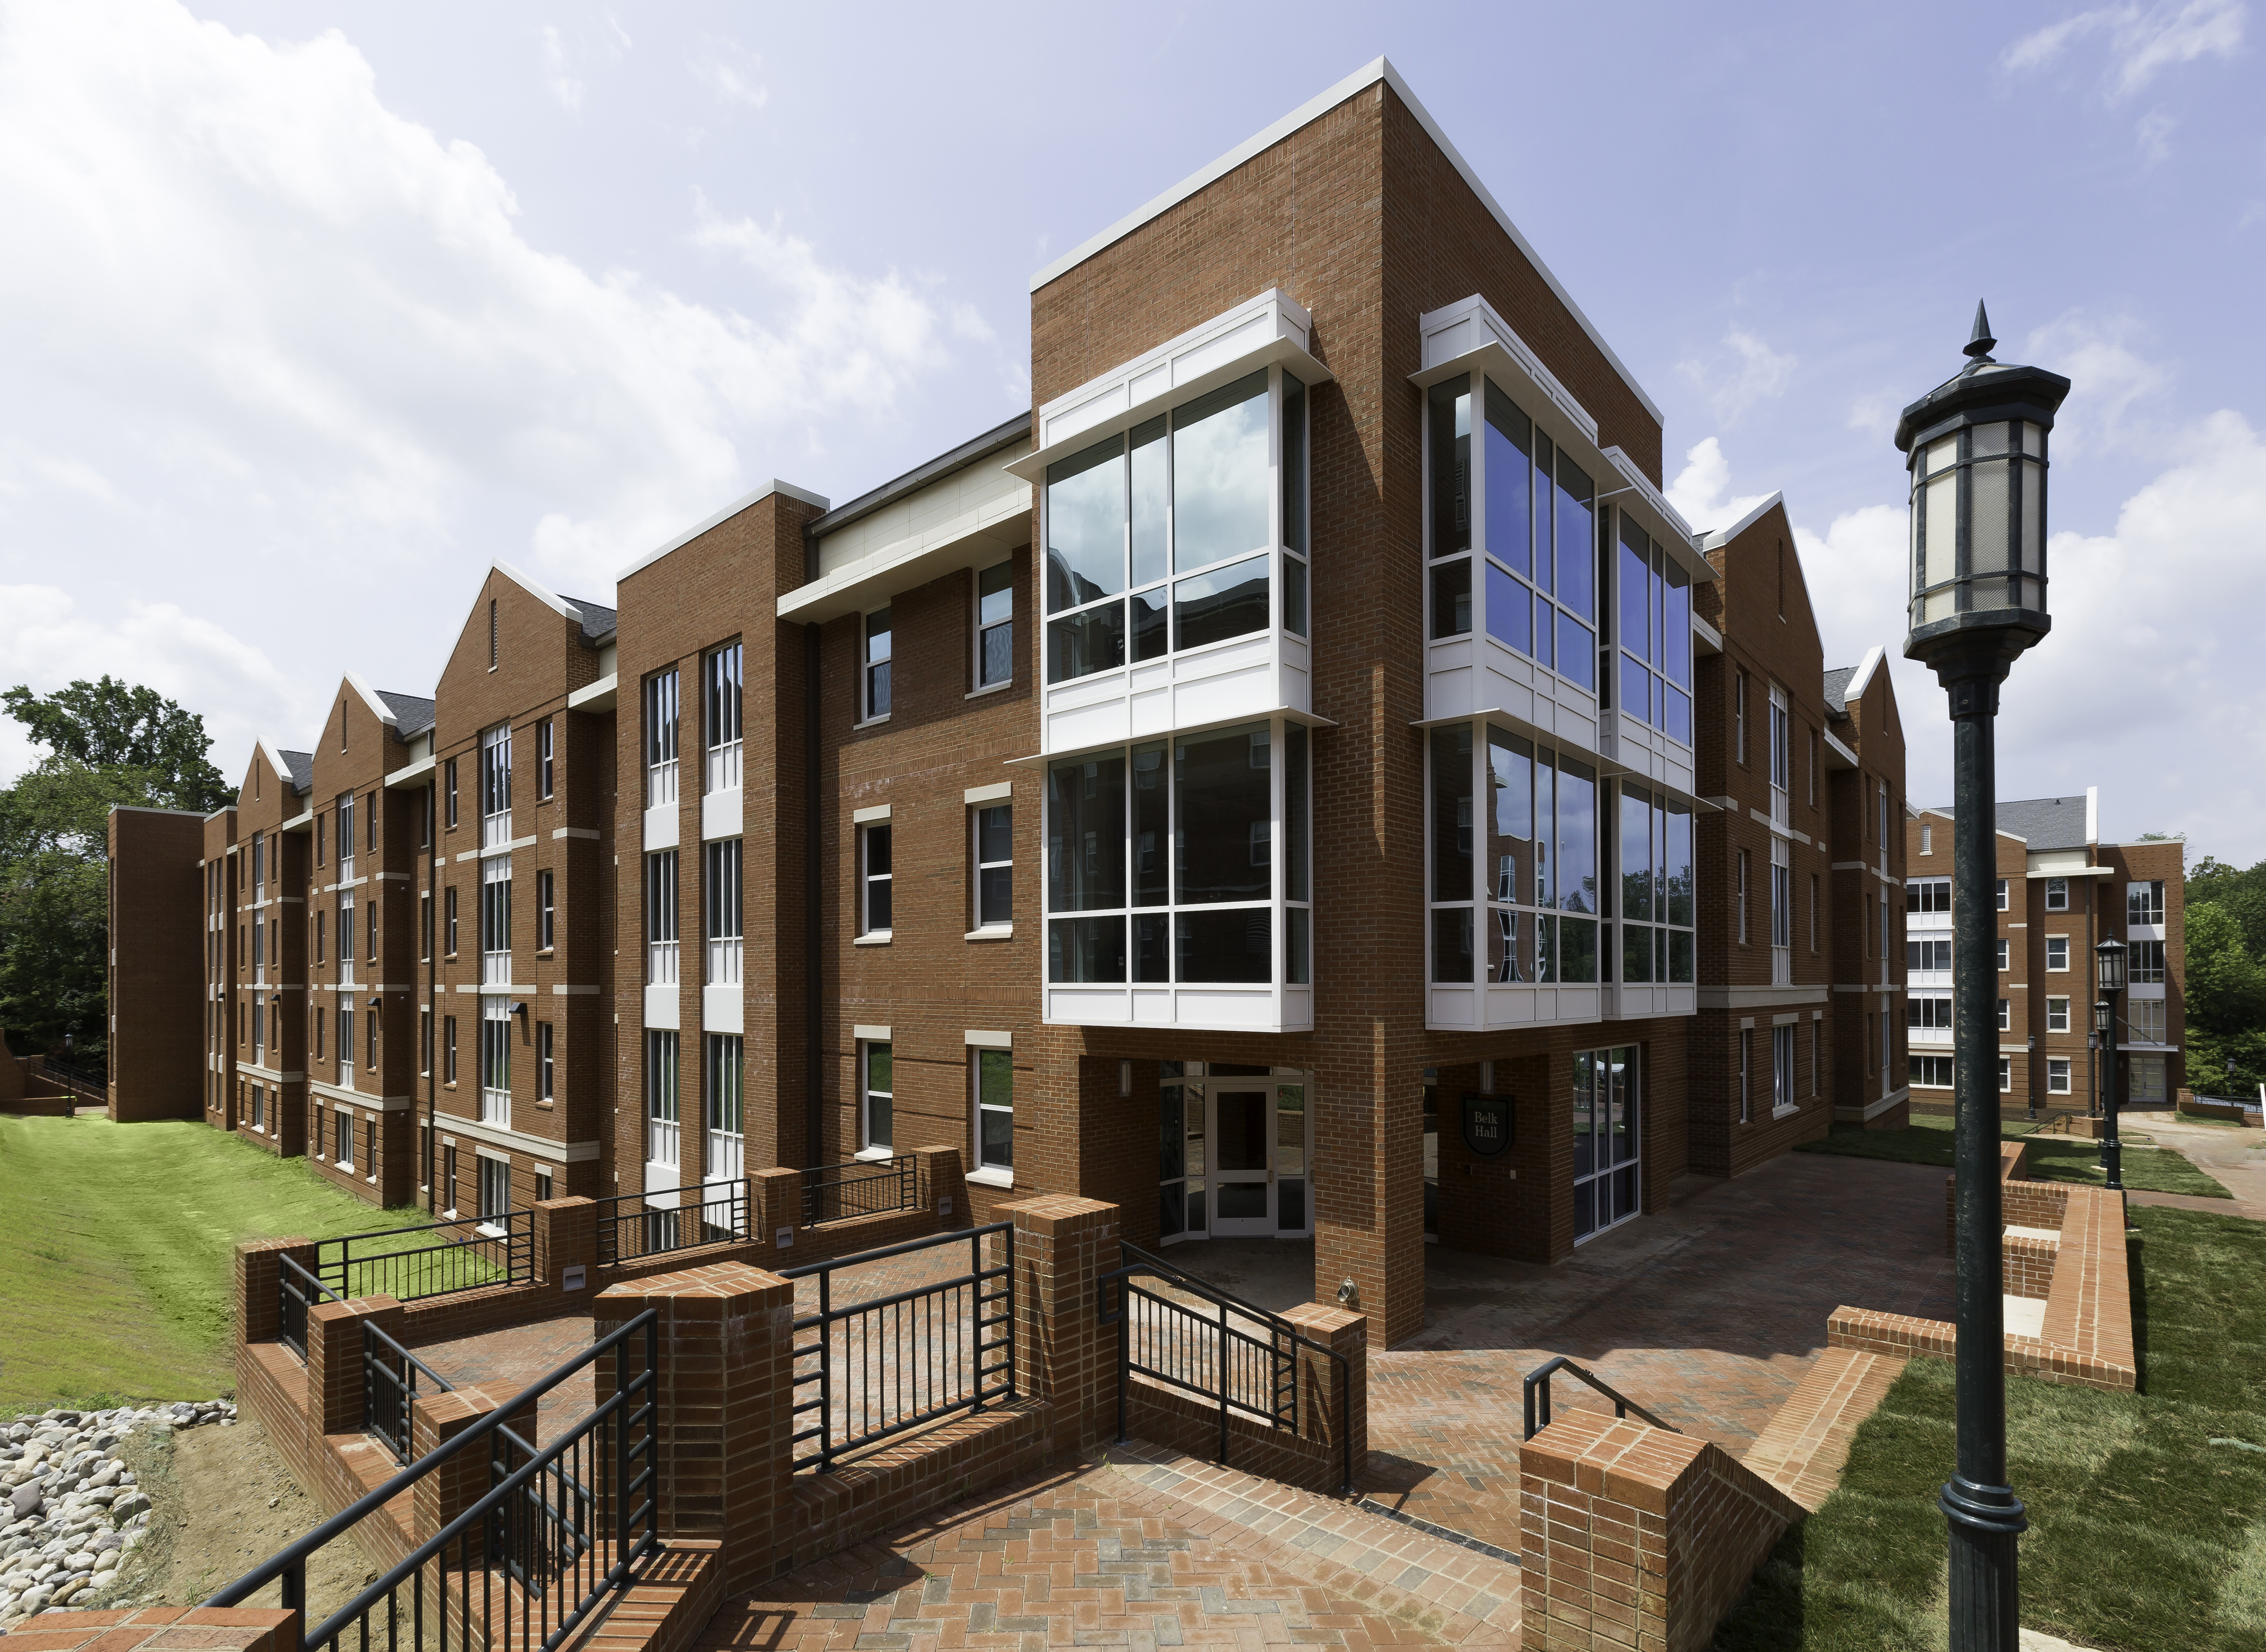 one bedroom student apartments in charlotte nc luxury student uncc belk hal no crop the university of north carolina charlotte is one students enjoying apartment